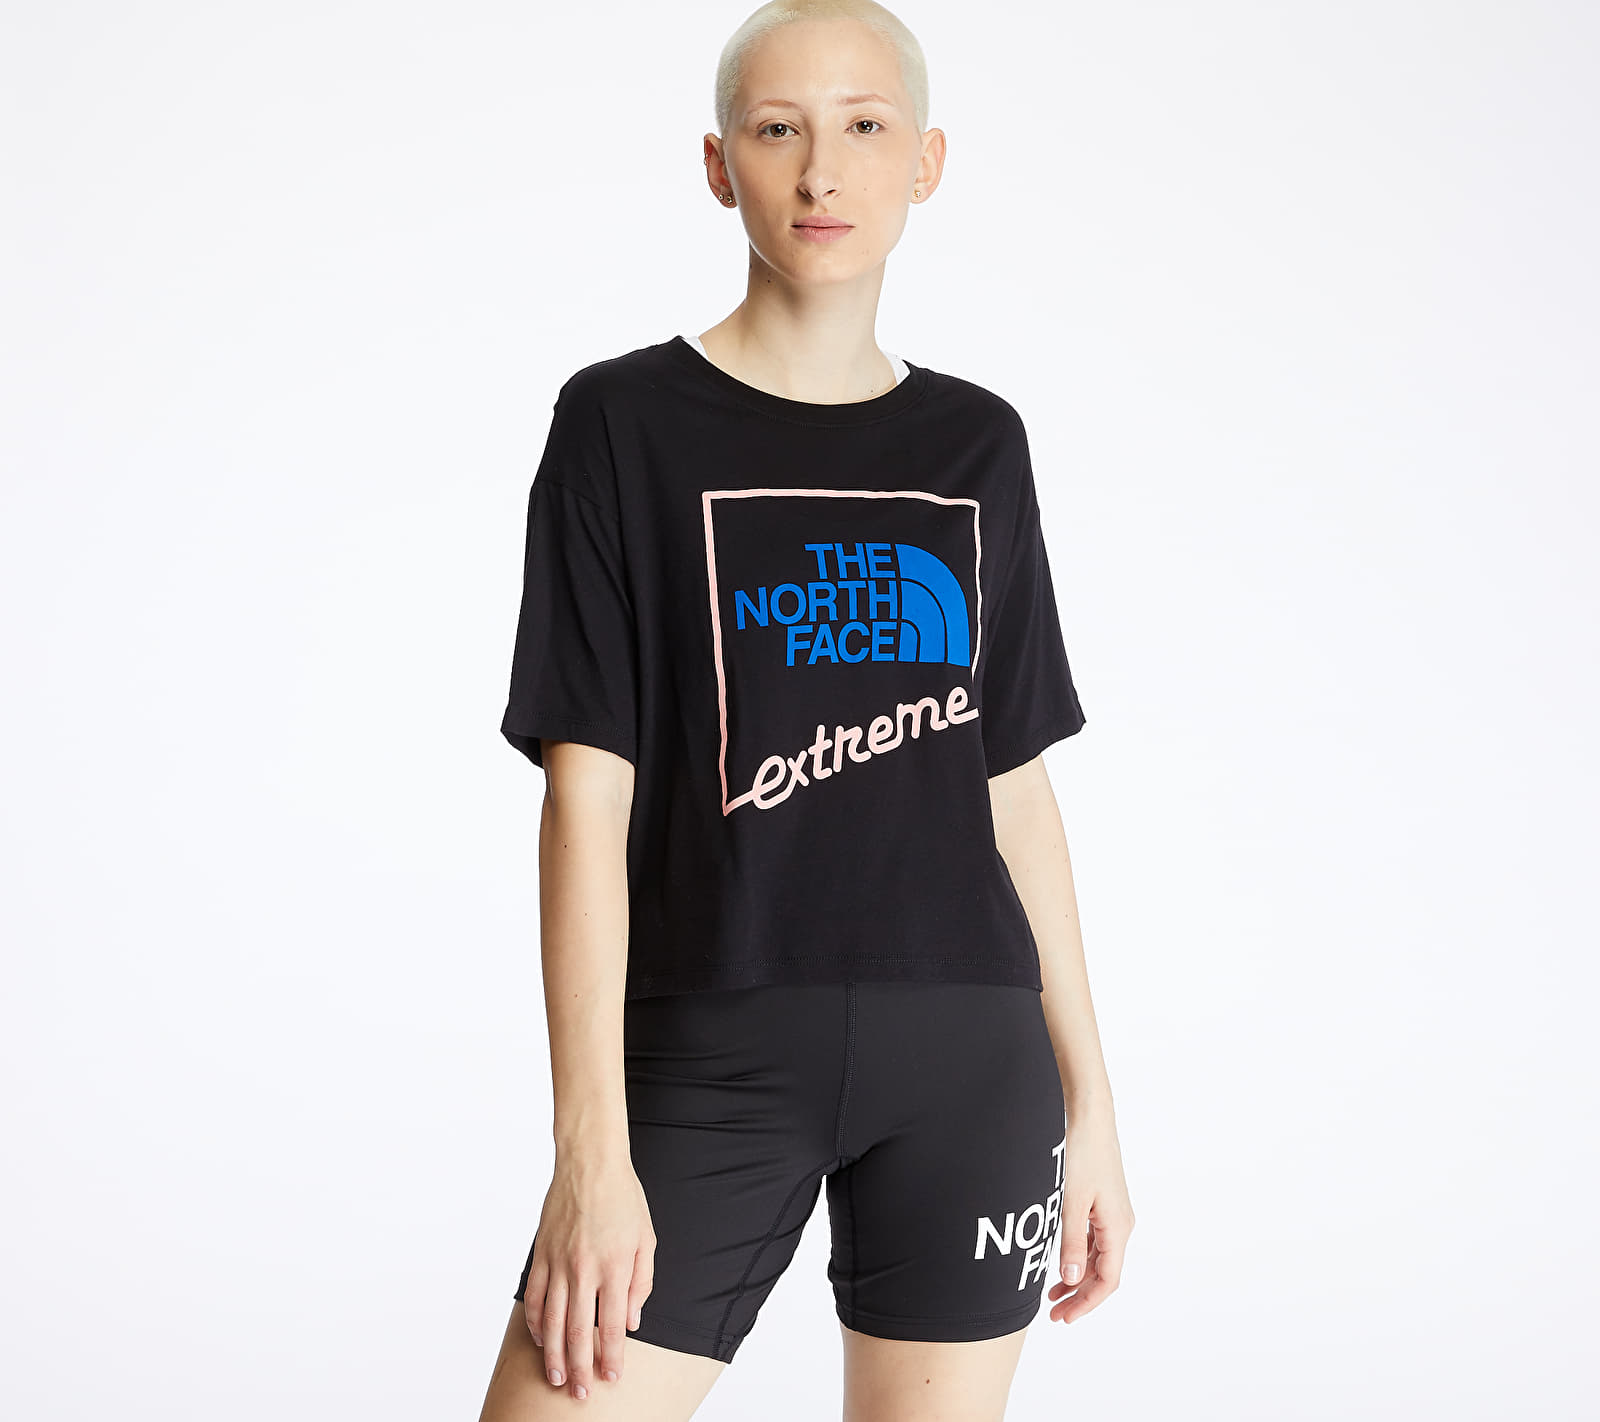 The North Face Extreme Crop Tee Black